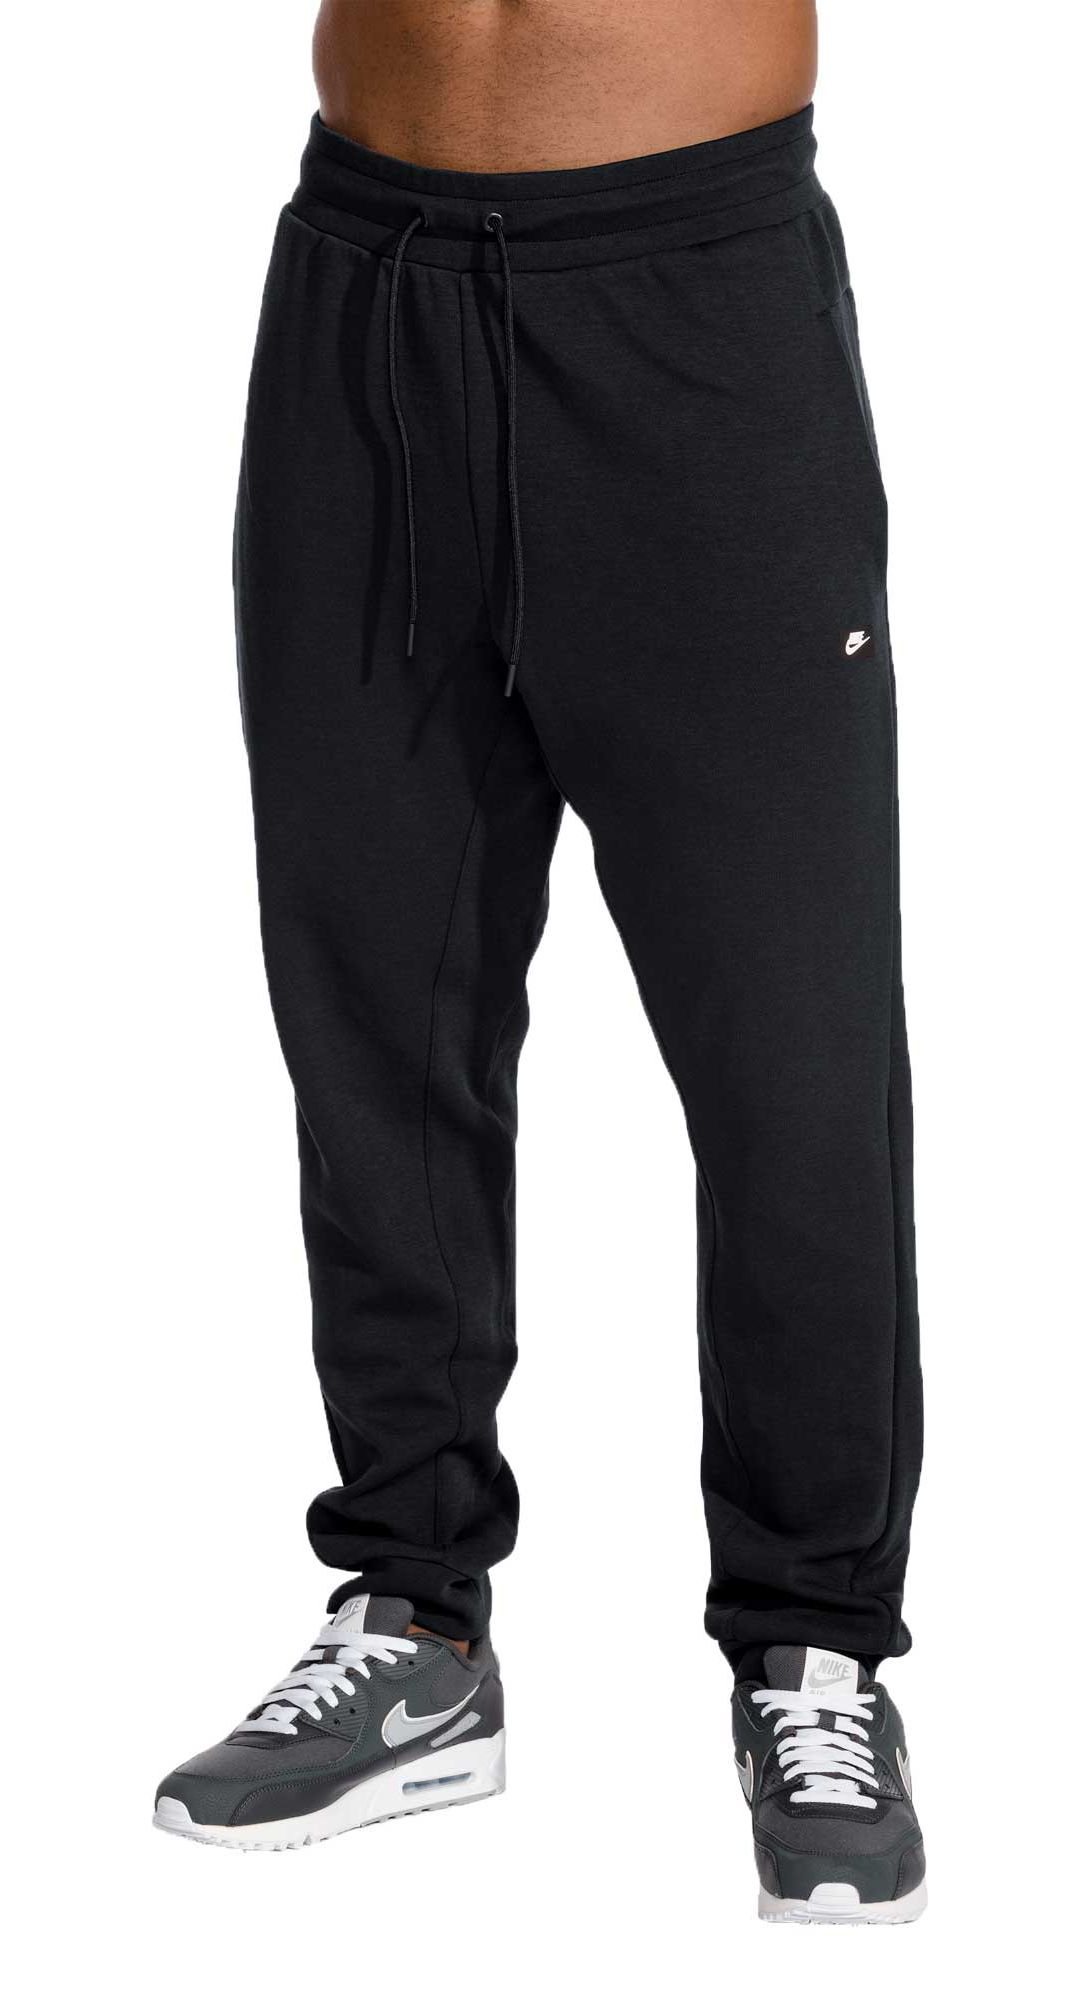 arrives lower price with free delivery Nike Men's Sportswear Optic Jogger Pants